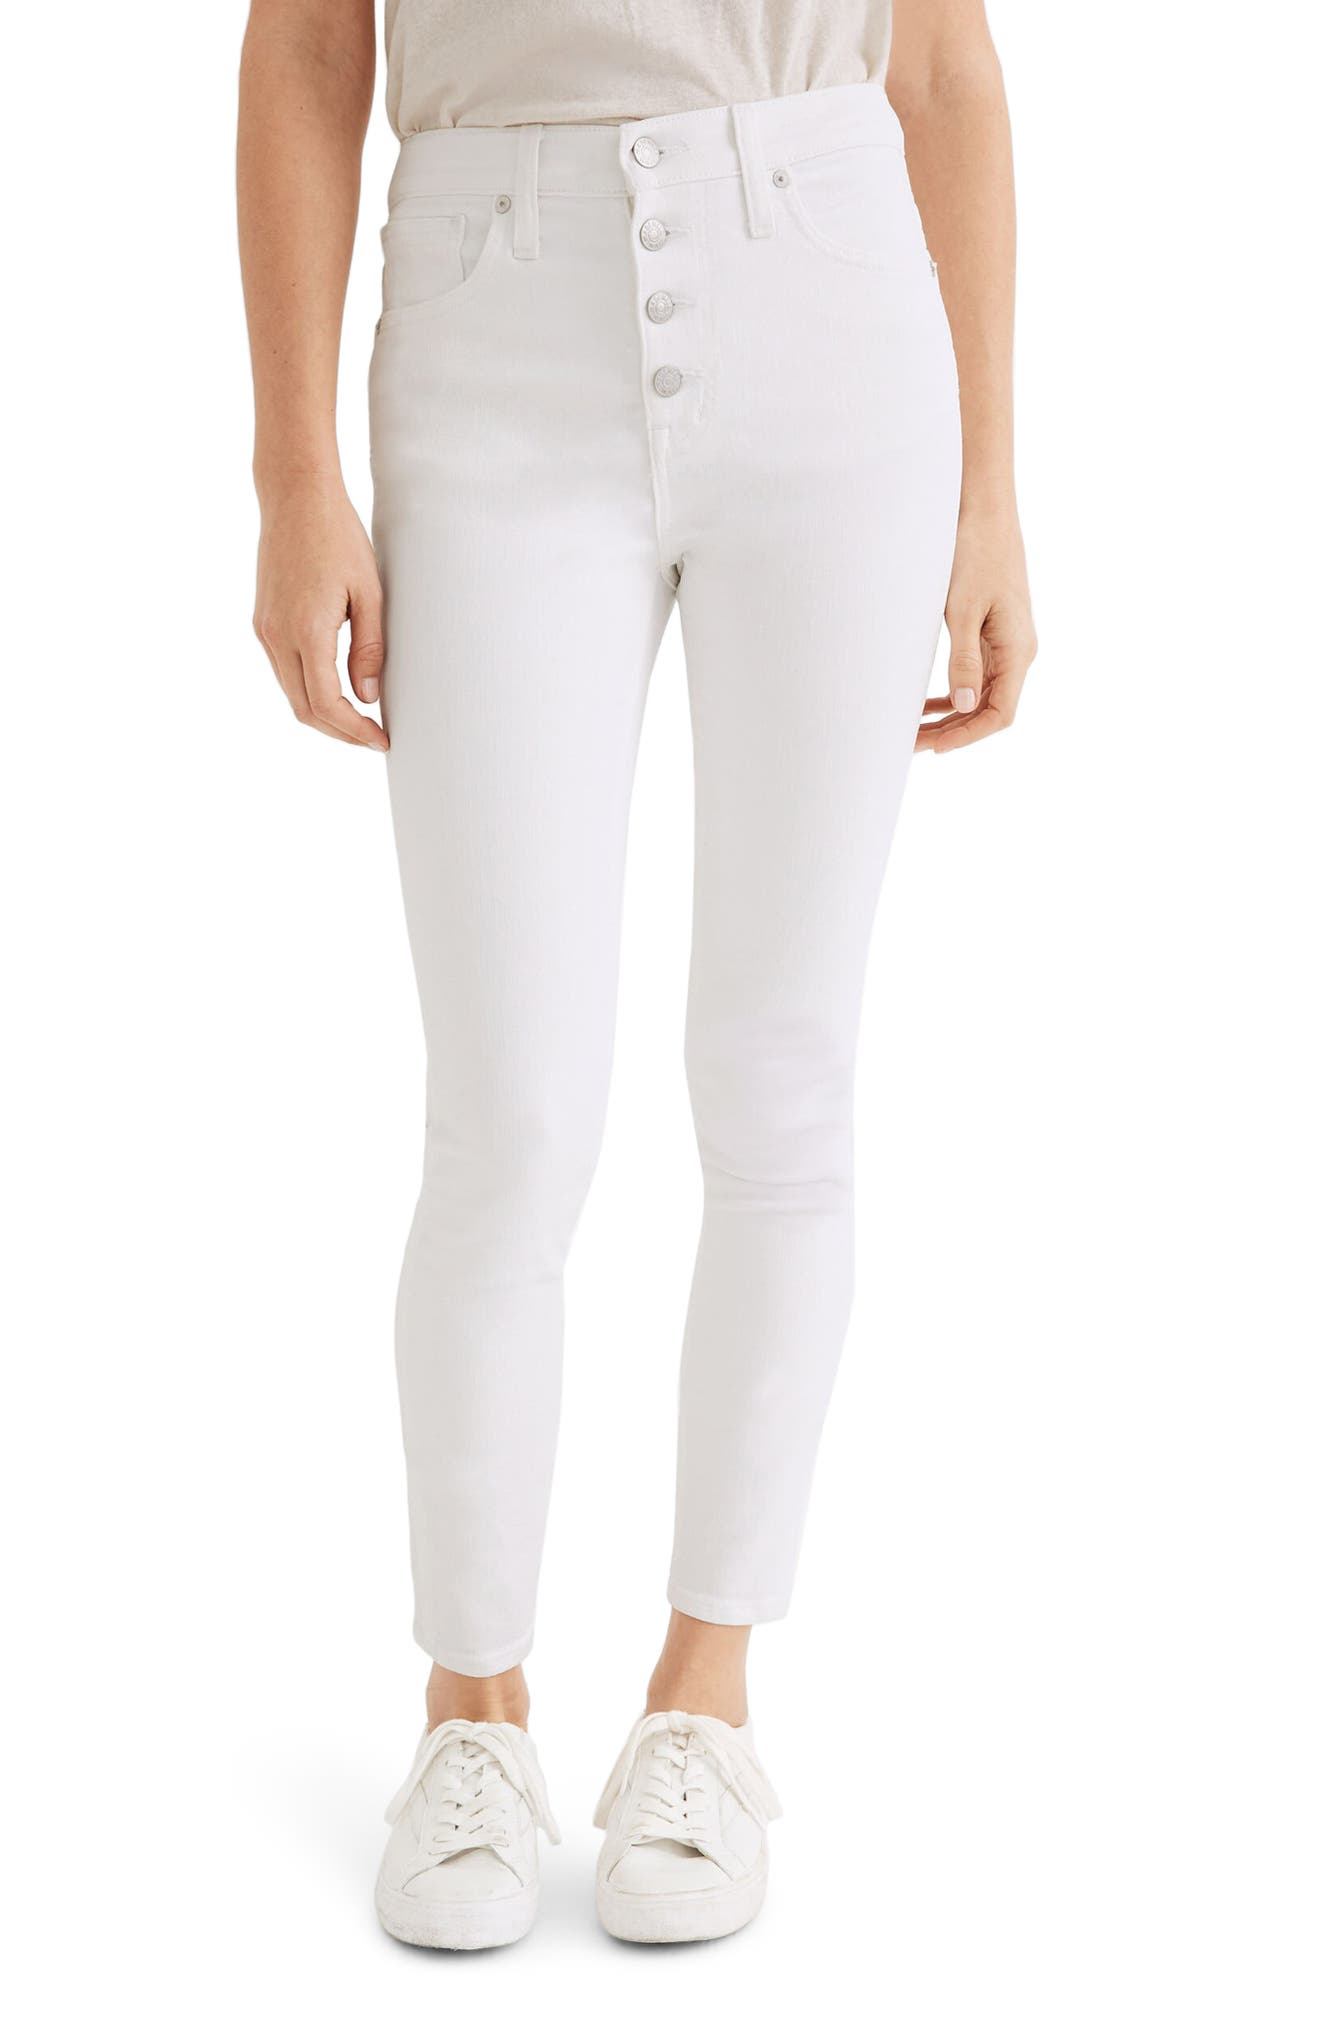 10-Inch High Waist Crop Skinny Jeans, Main, color, PURE WHITE